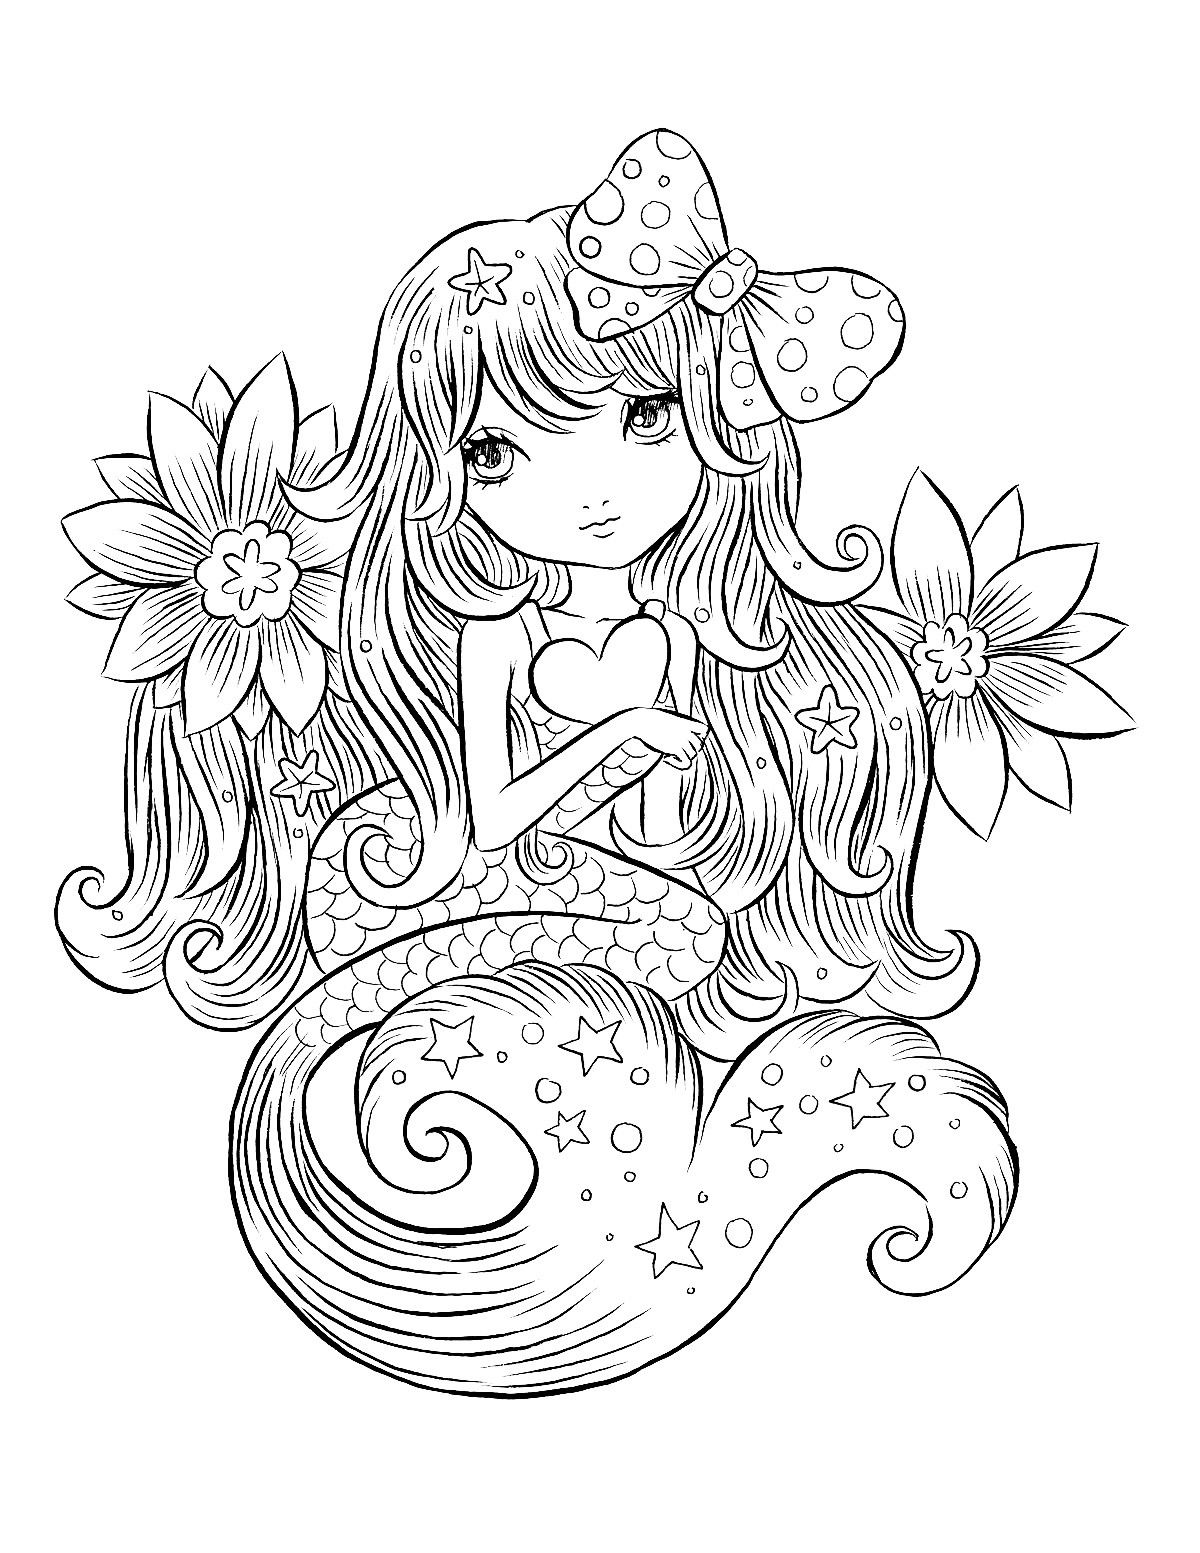 adorable unicorn mermaid coloring pages cute unicorn face coloring pages colouring mermaid in adorable unicorn pages coloring mermaid